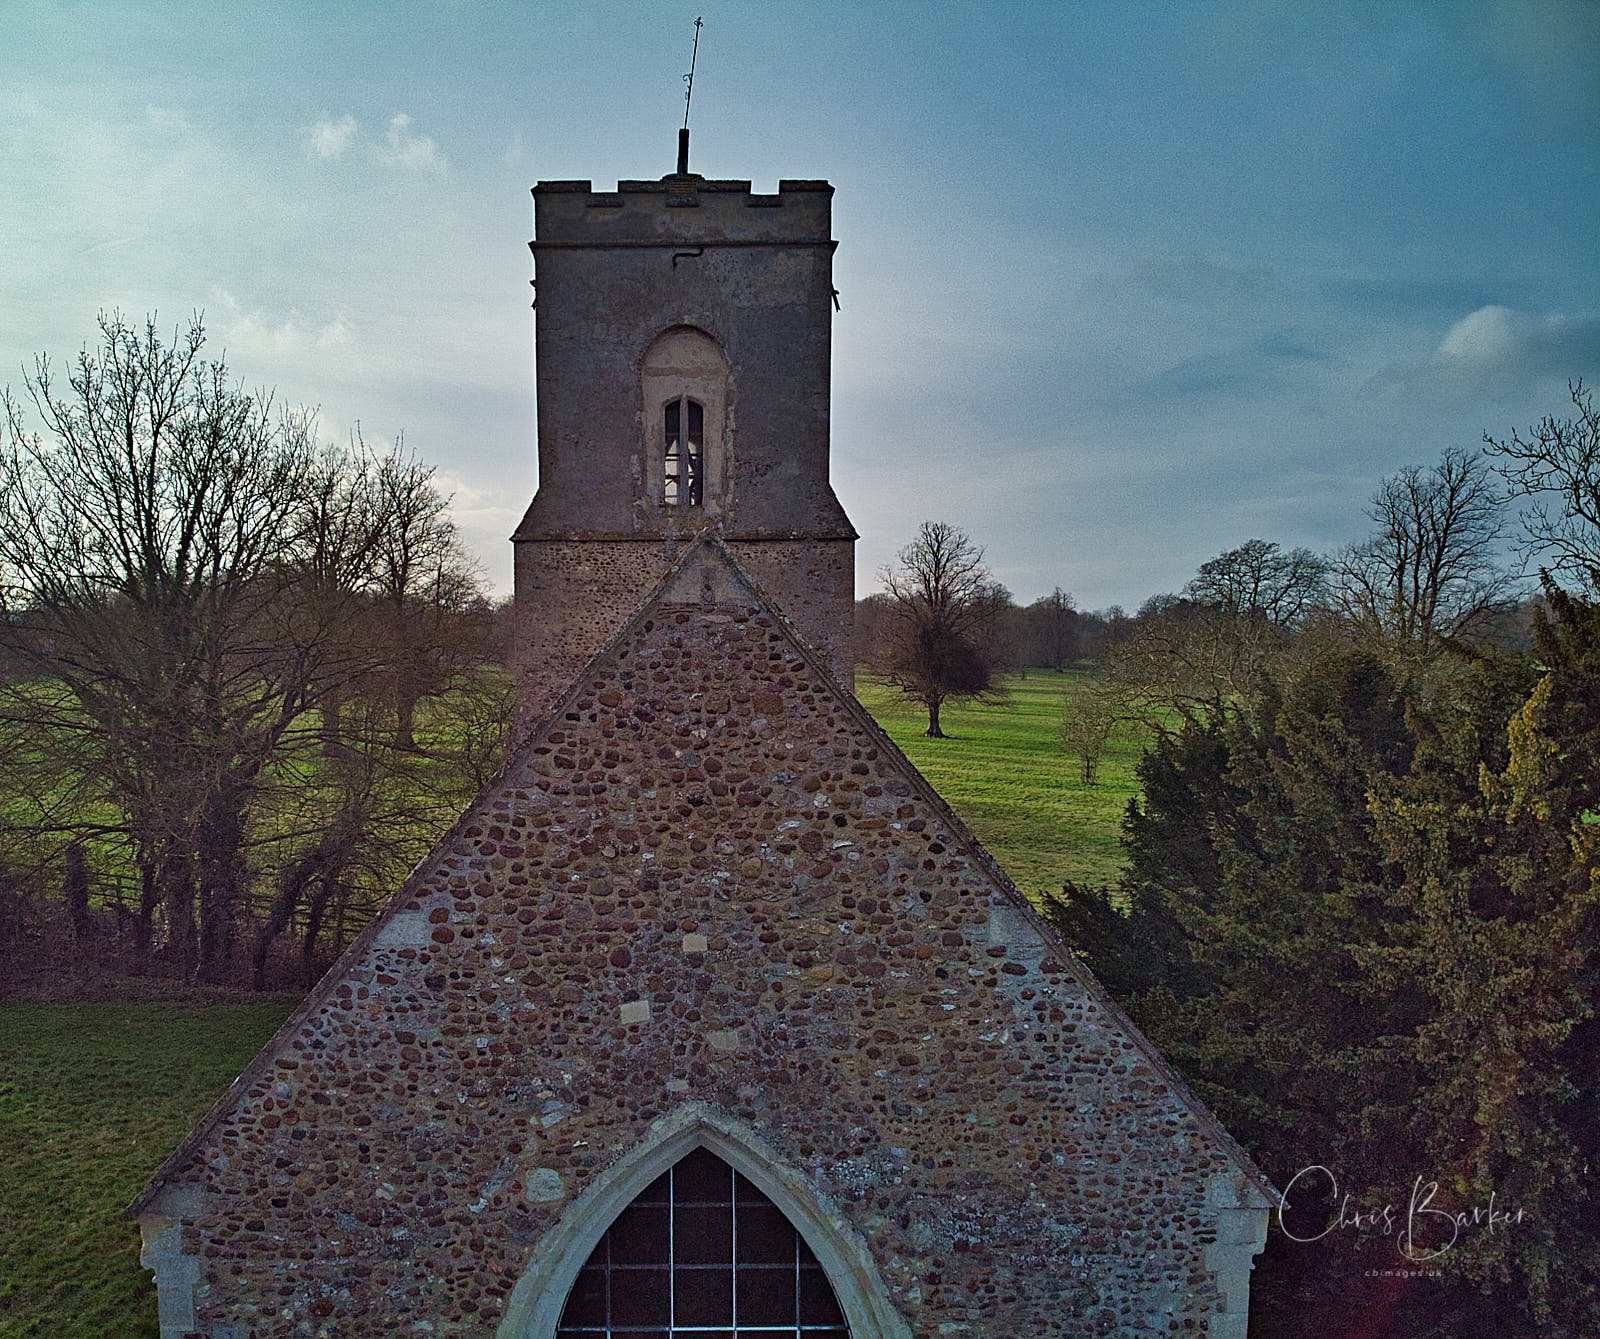 Church viewed from the end of the roof ridge